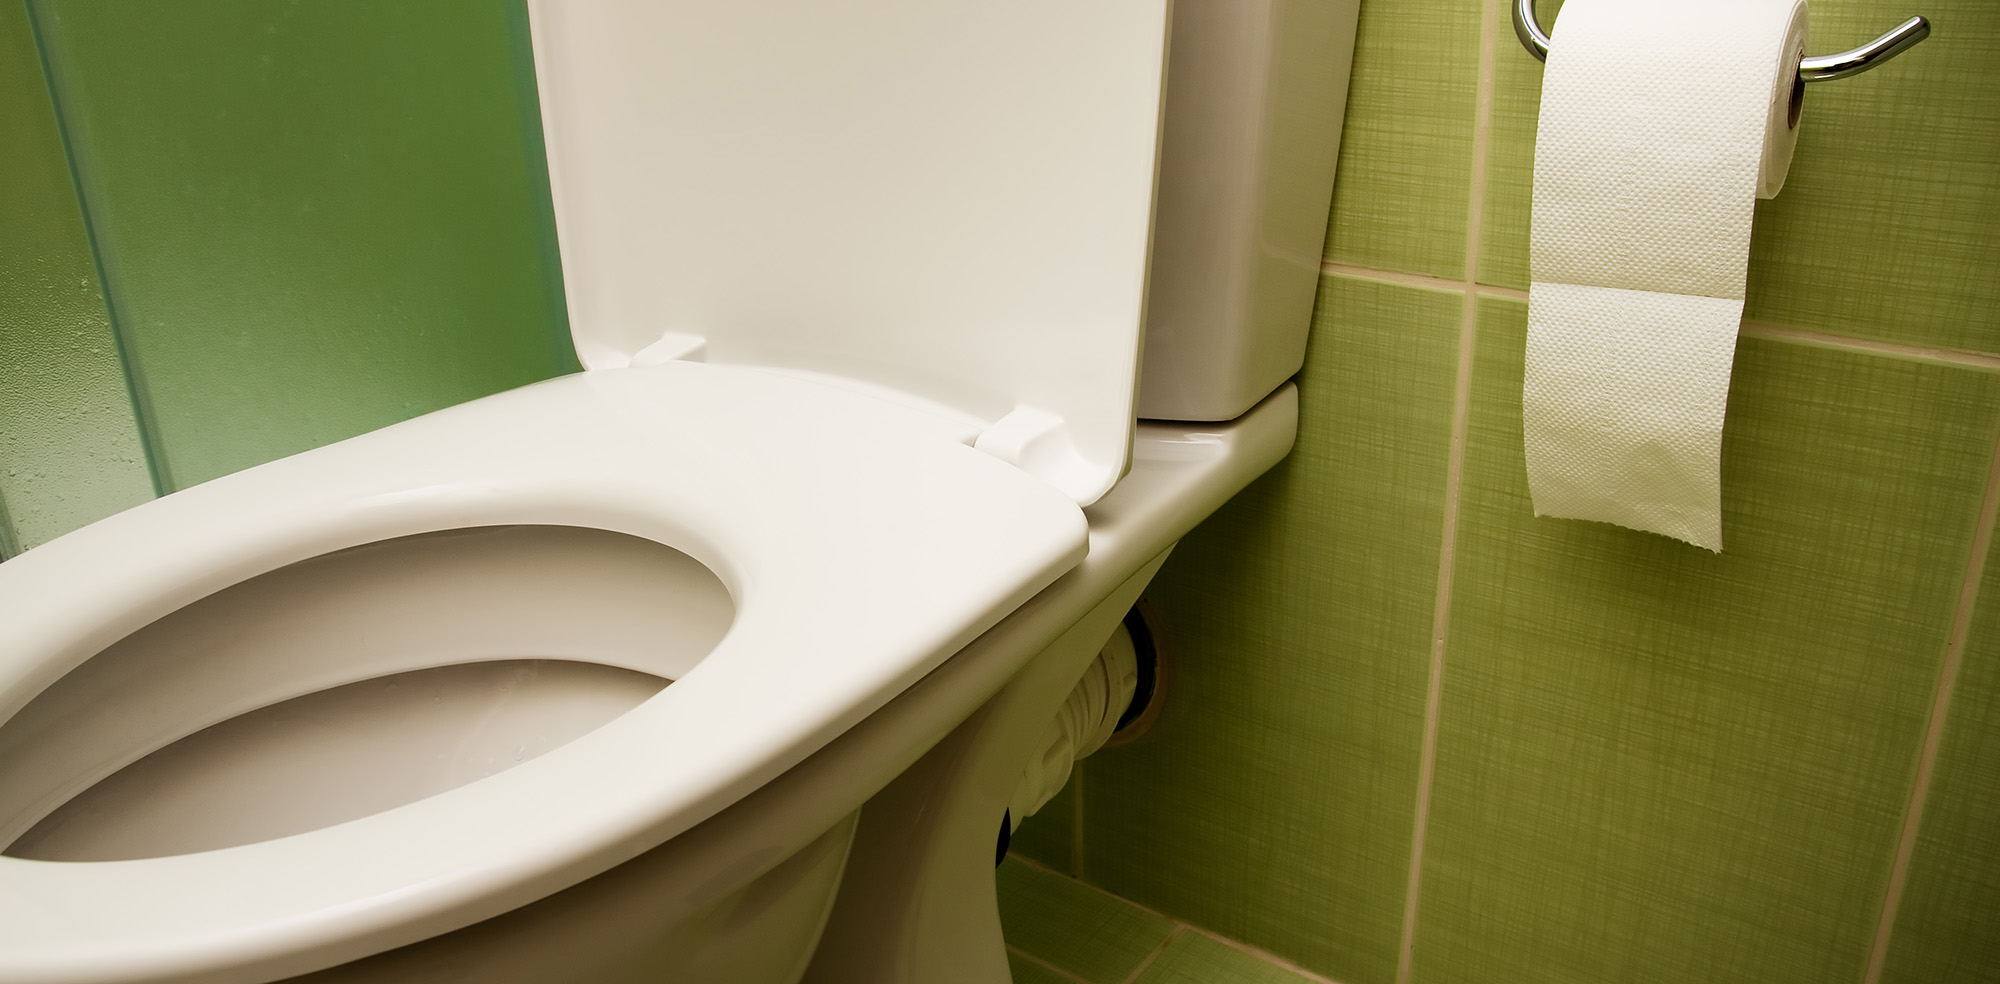 8 things filthier than a toilet seat